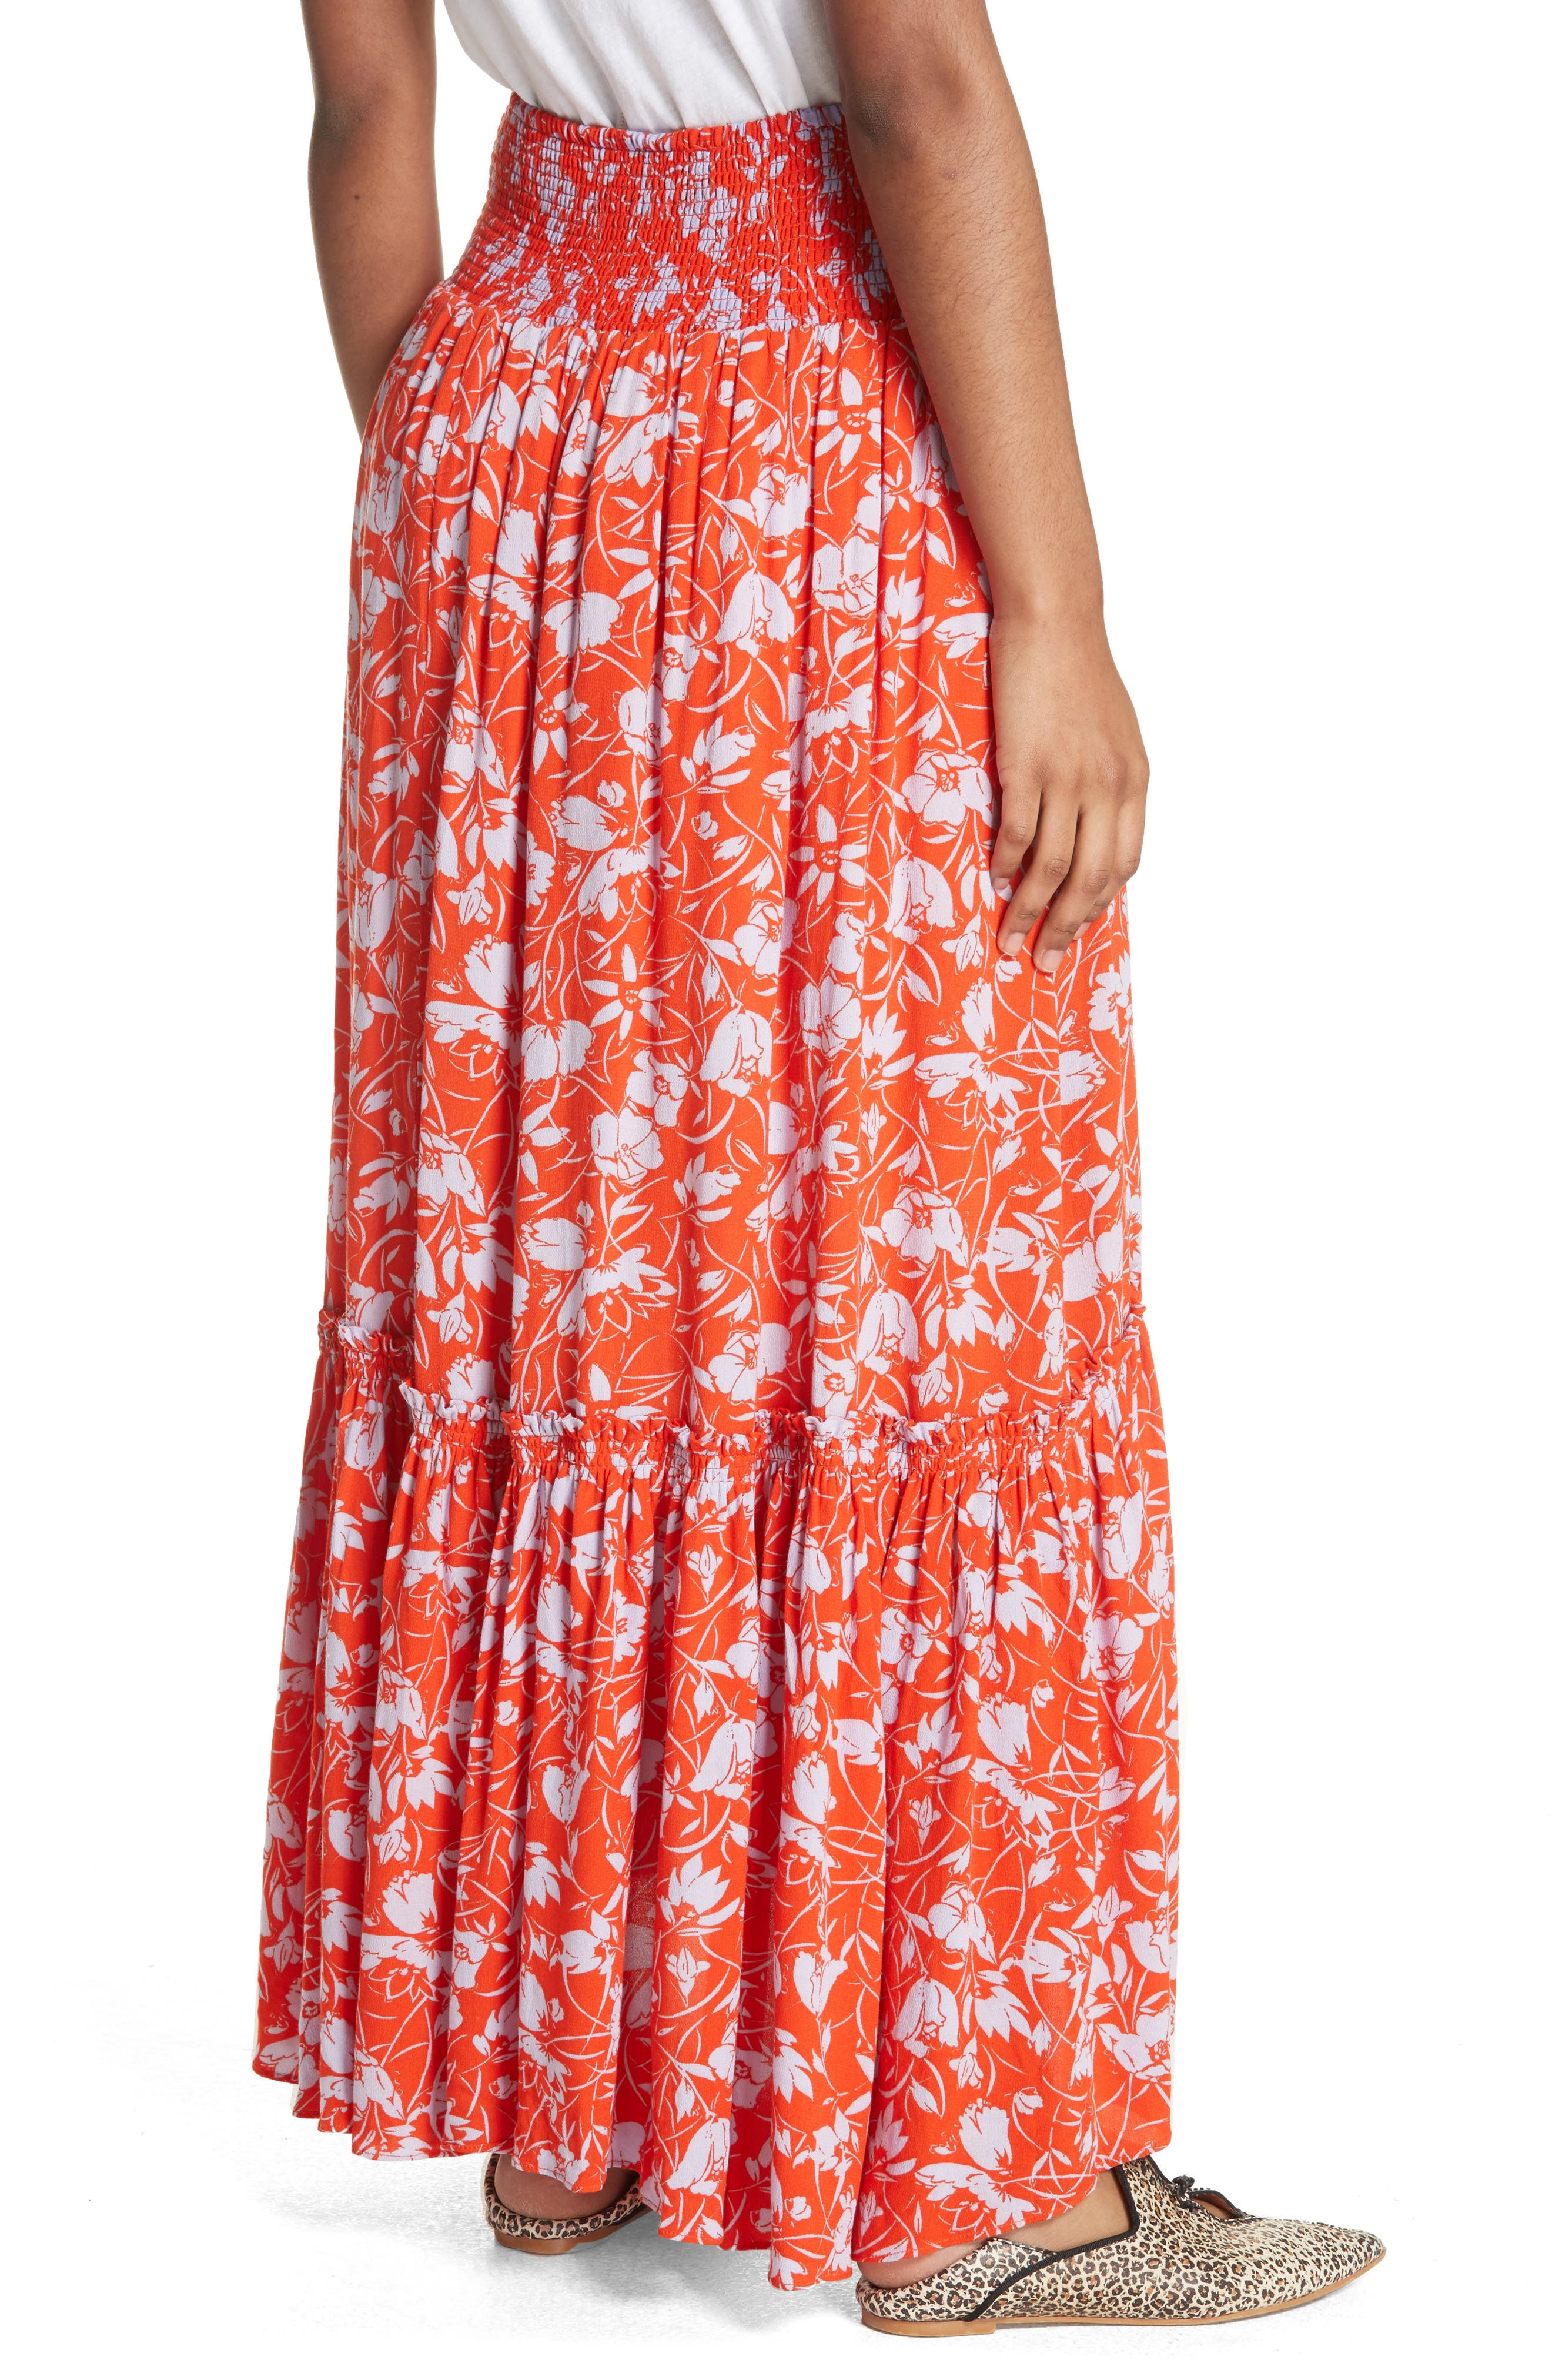 Way of the Wind Print Maxi Skirt,                             Alternate thumbnail 2, color,                             600